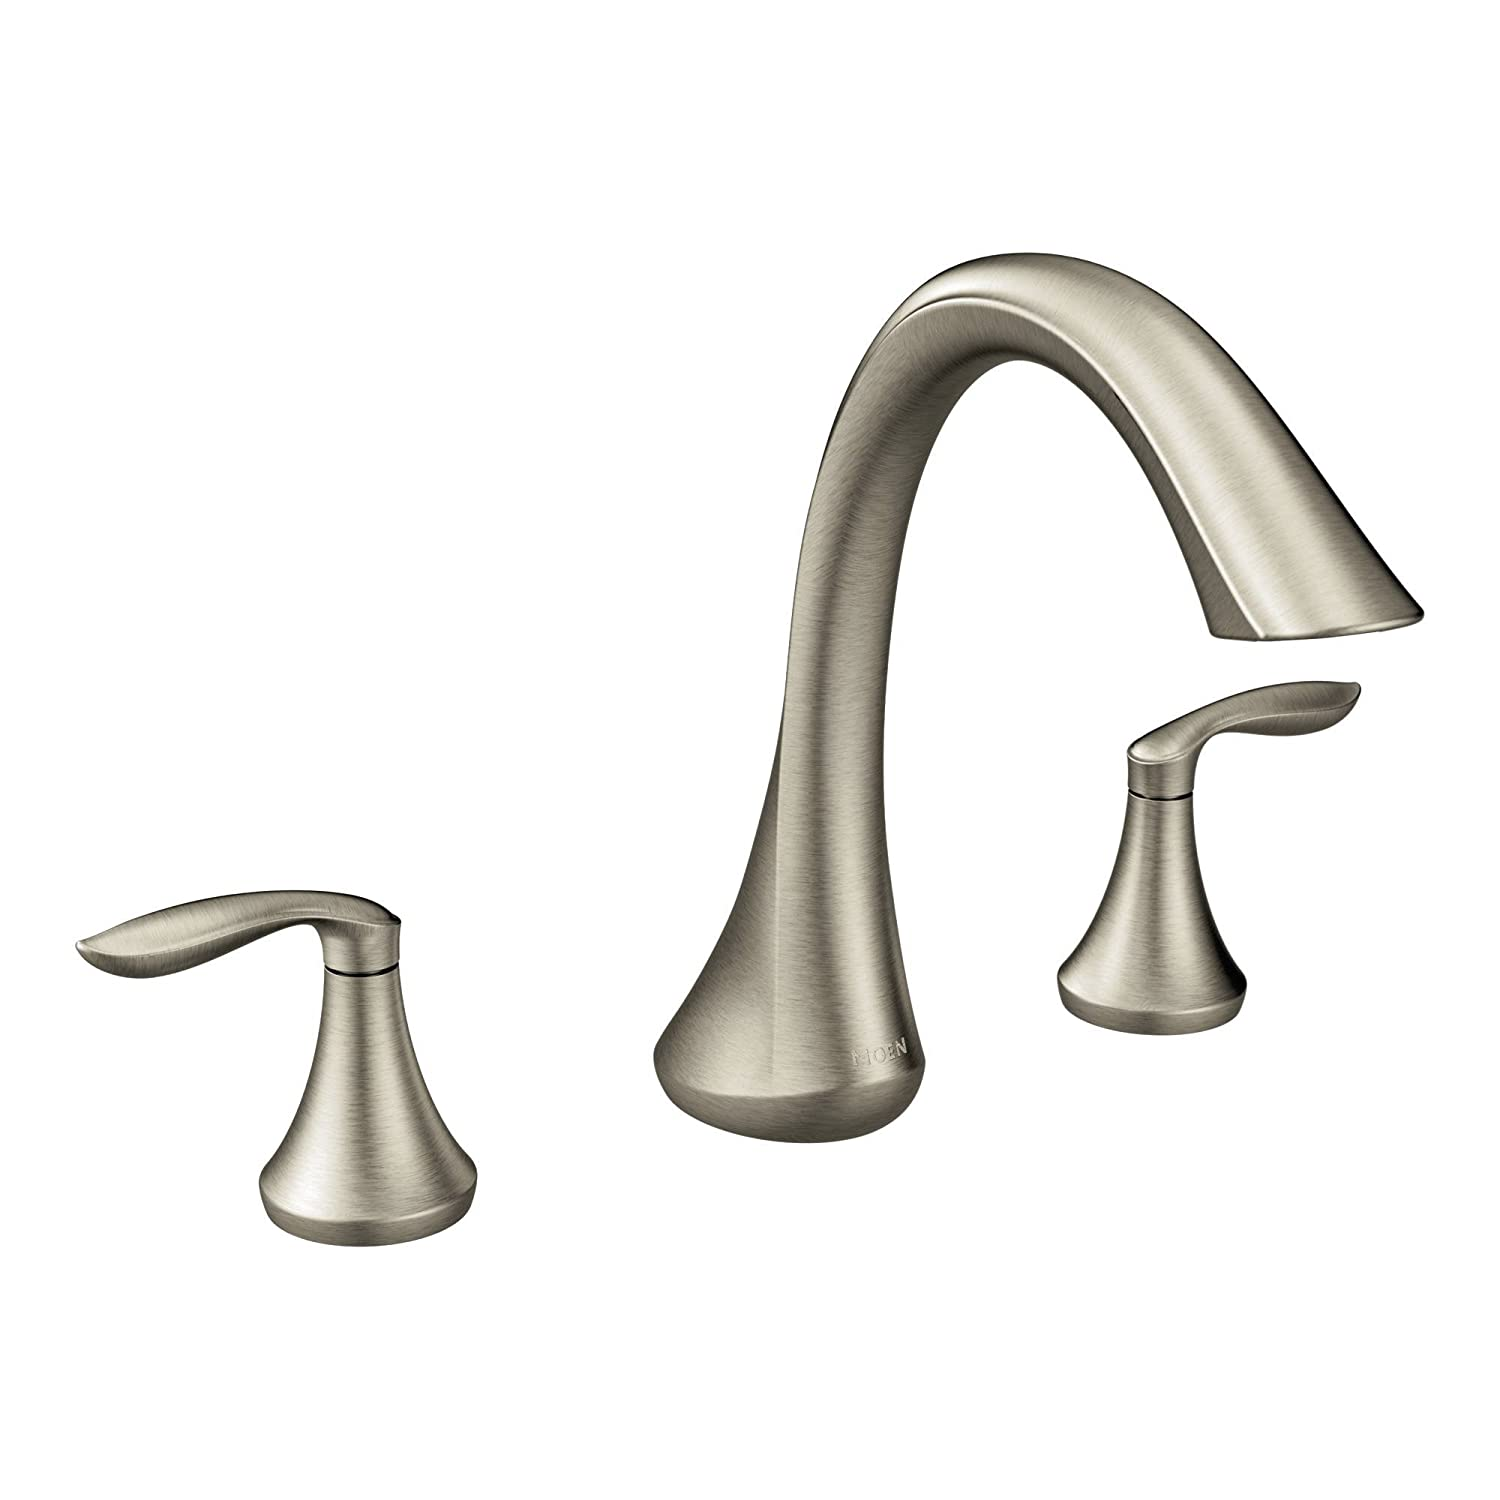 Moen T943BN Eva Two-Handle High-Arc Roman Tub Faucet without Valve, Brushed Nickel